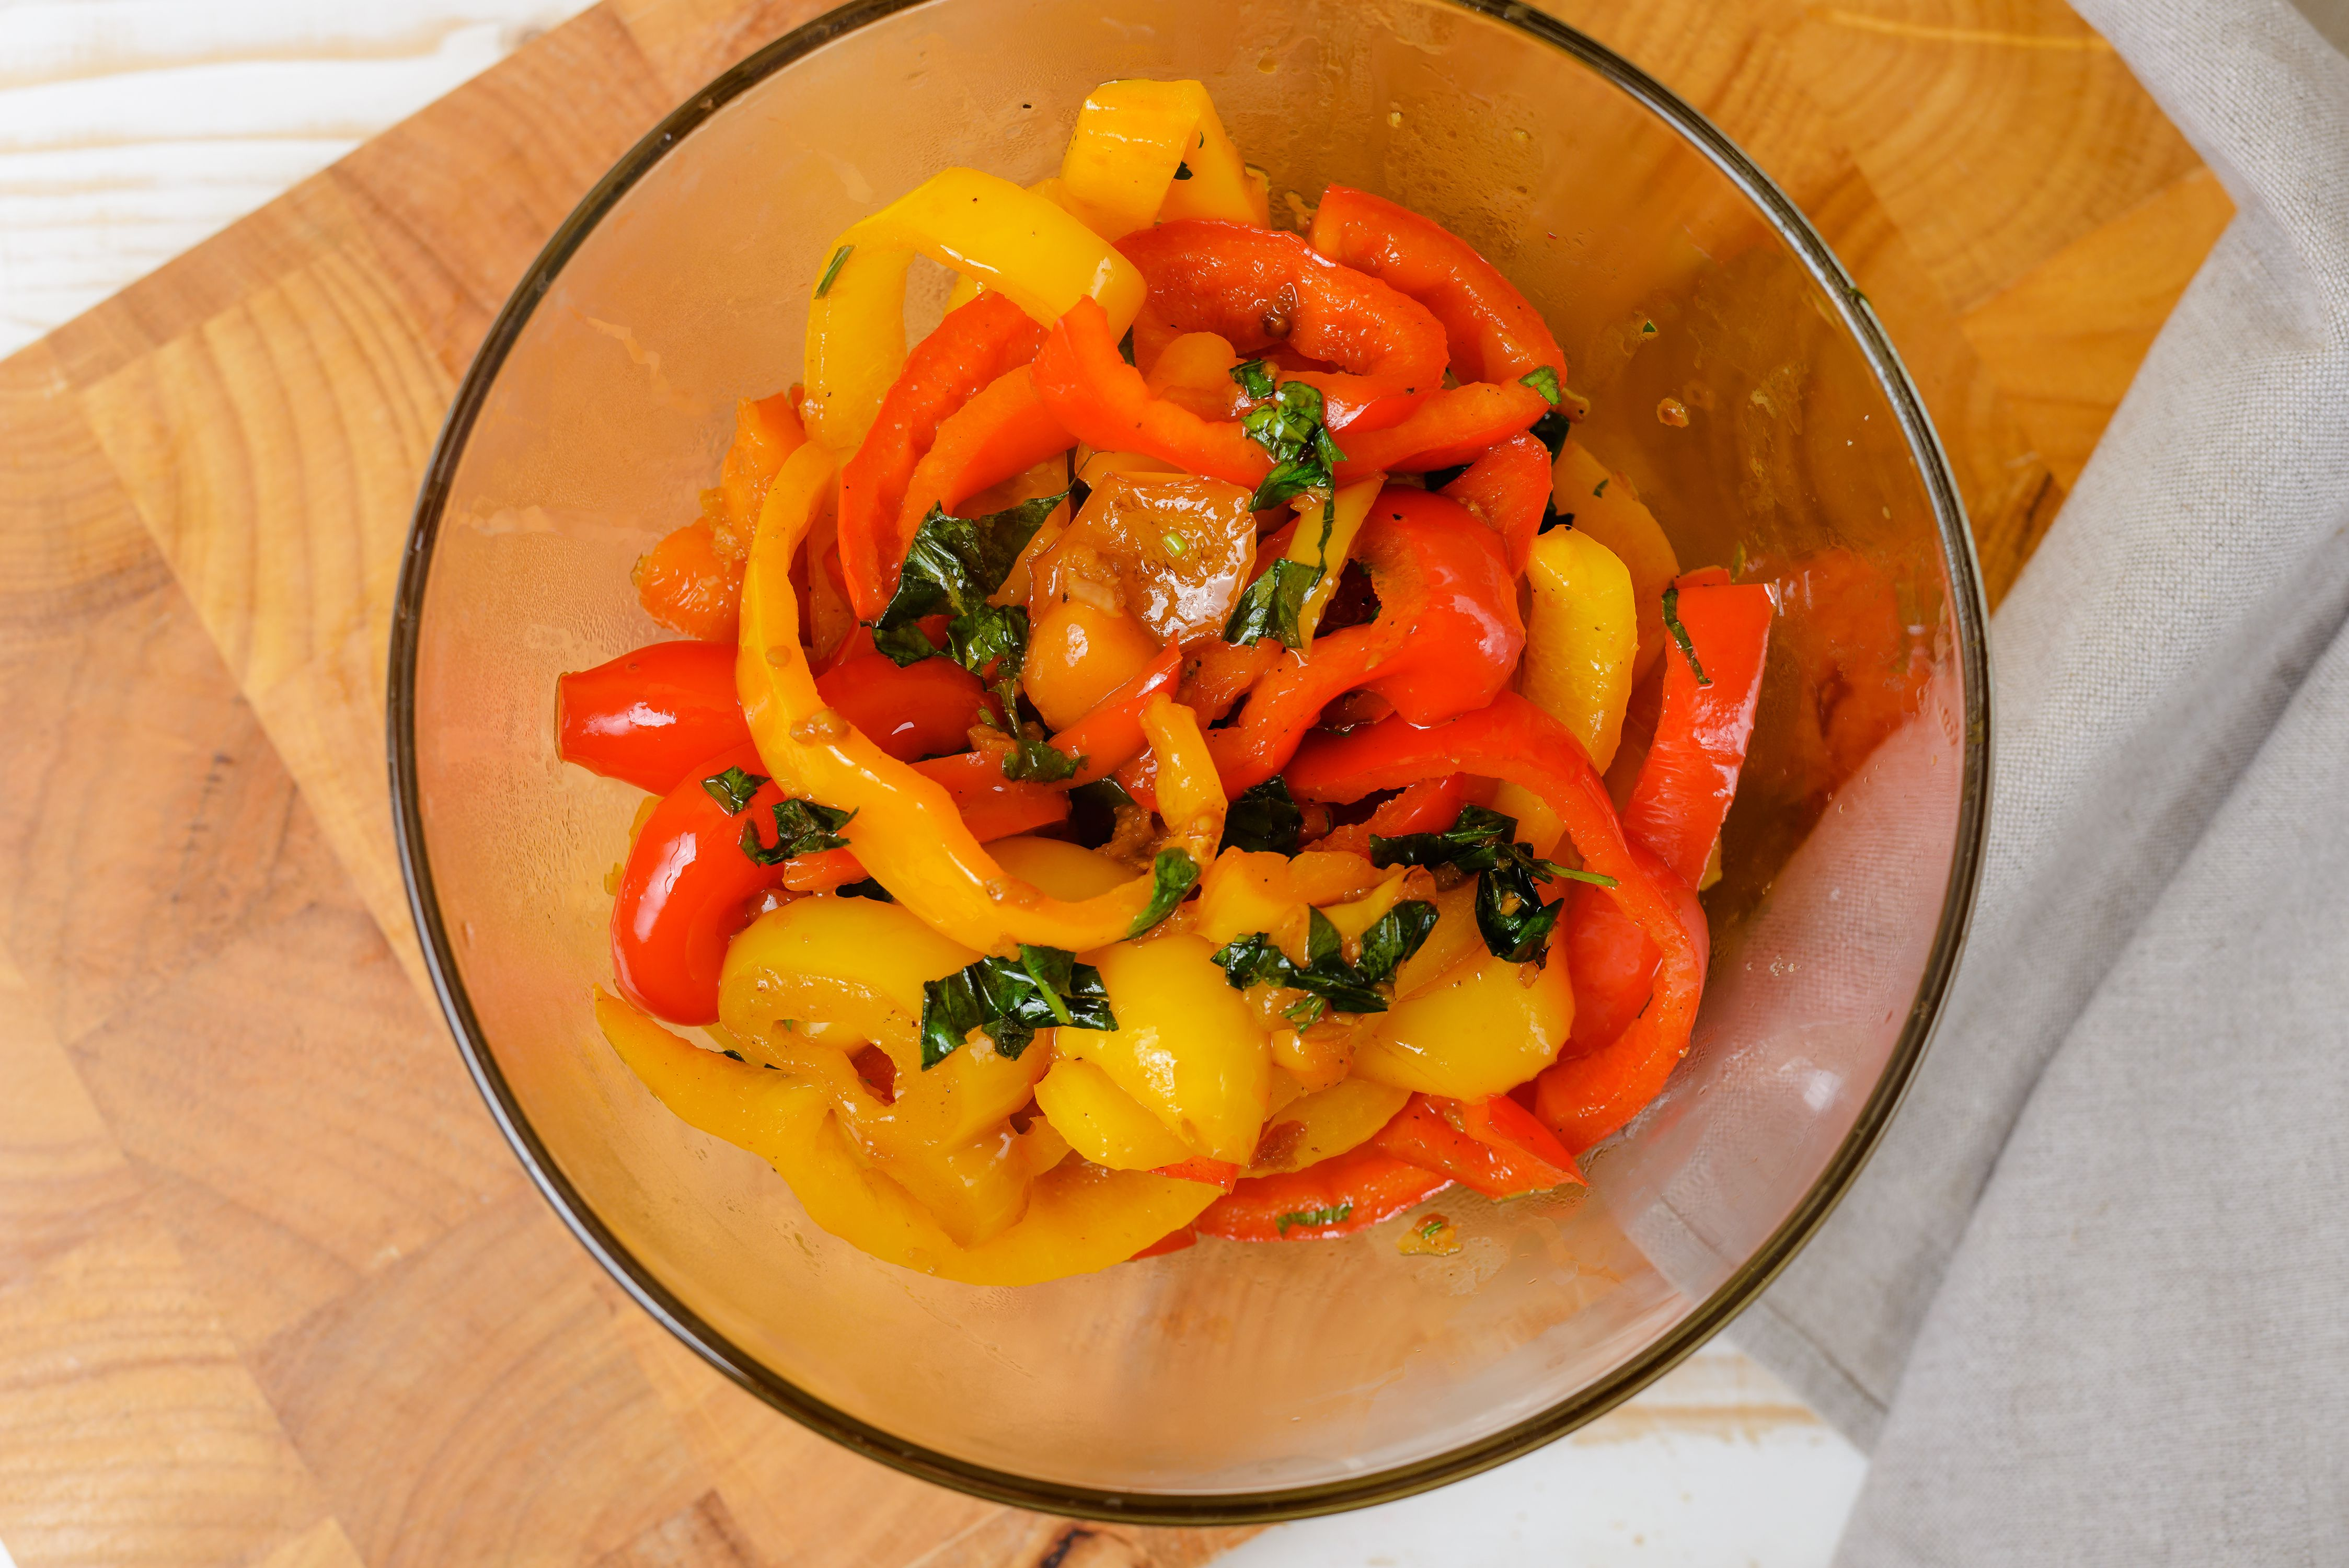 Garlic and herb sautéed bell pepper strips in a bowl